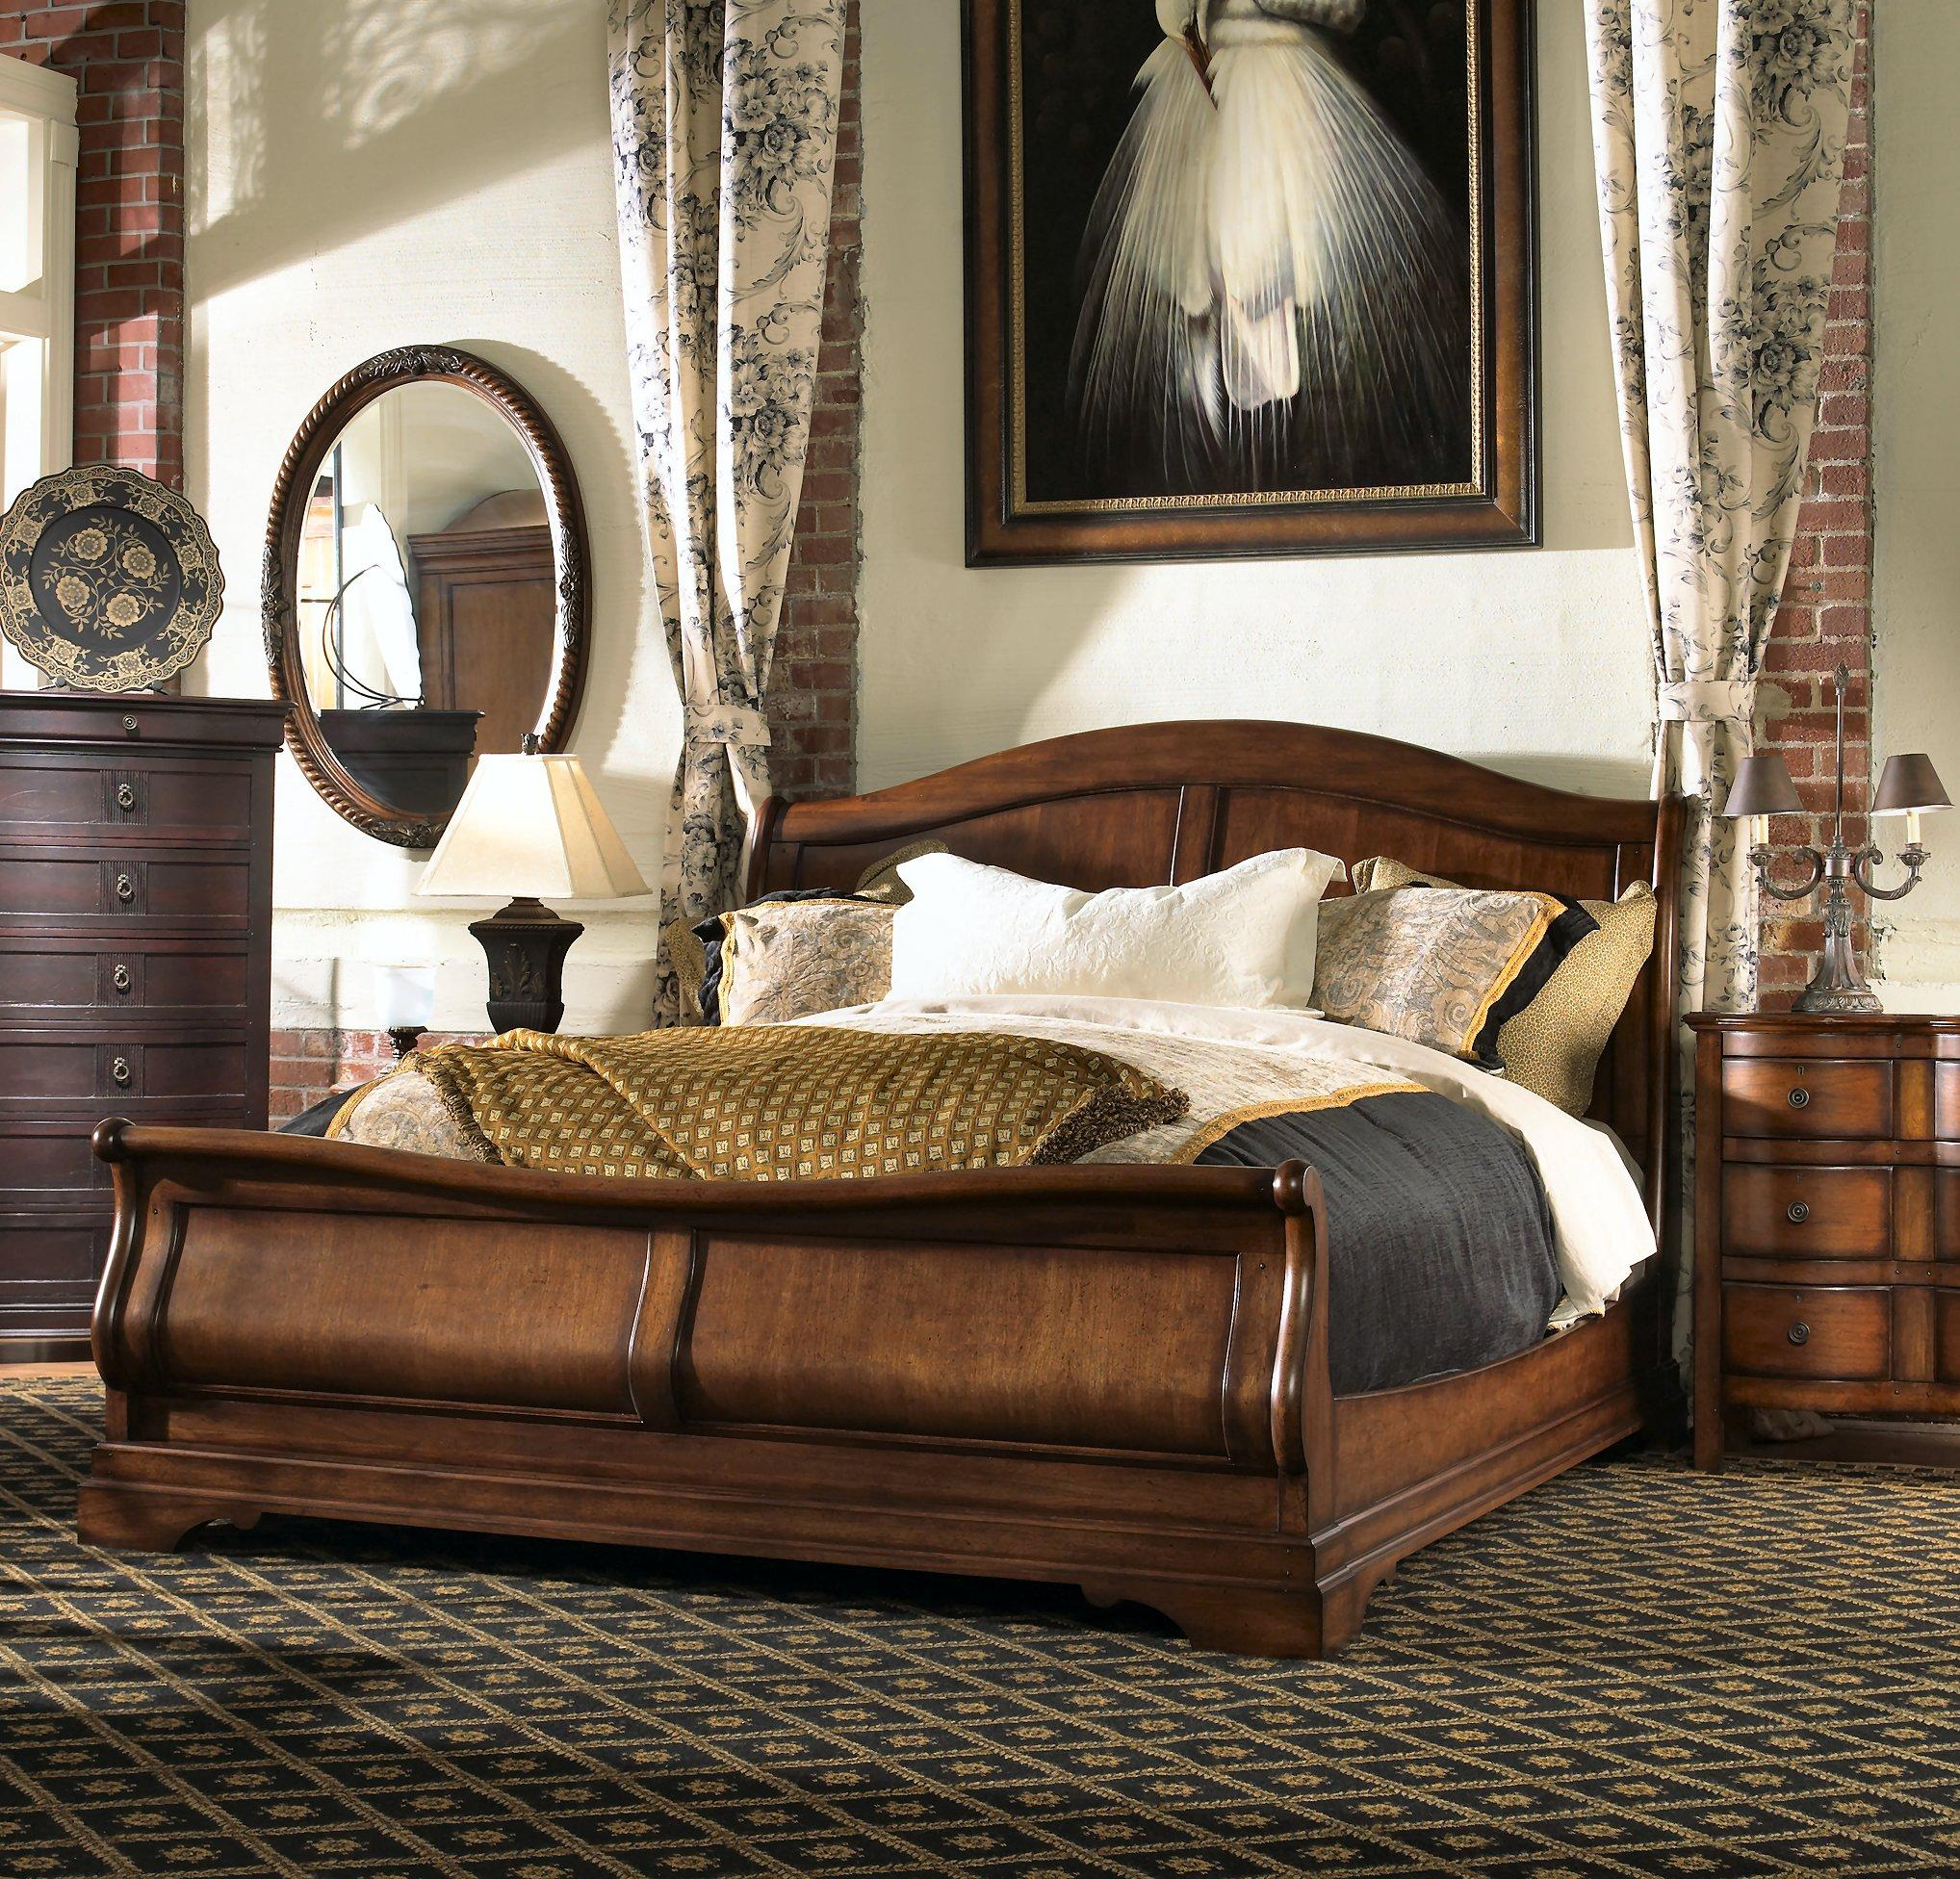 king sleigh bed by fine furniture design wolf and gardiner wolf furniture. Black Bedroom Furniture Sets. Home Design Ideas